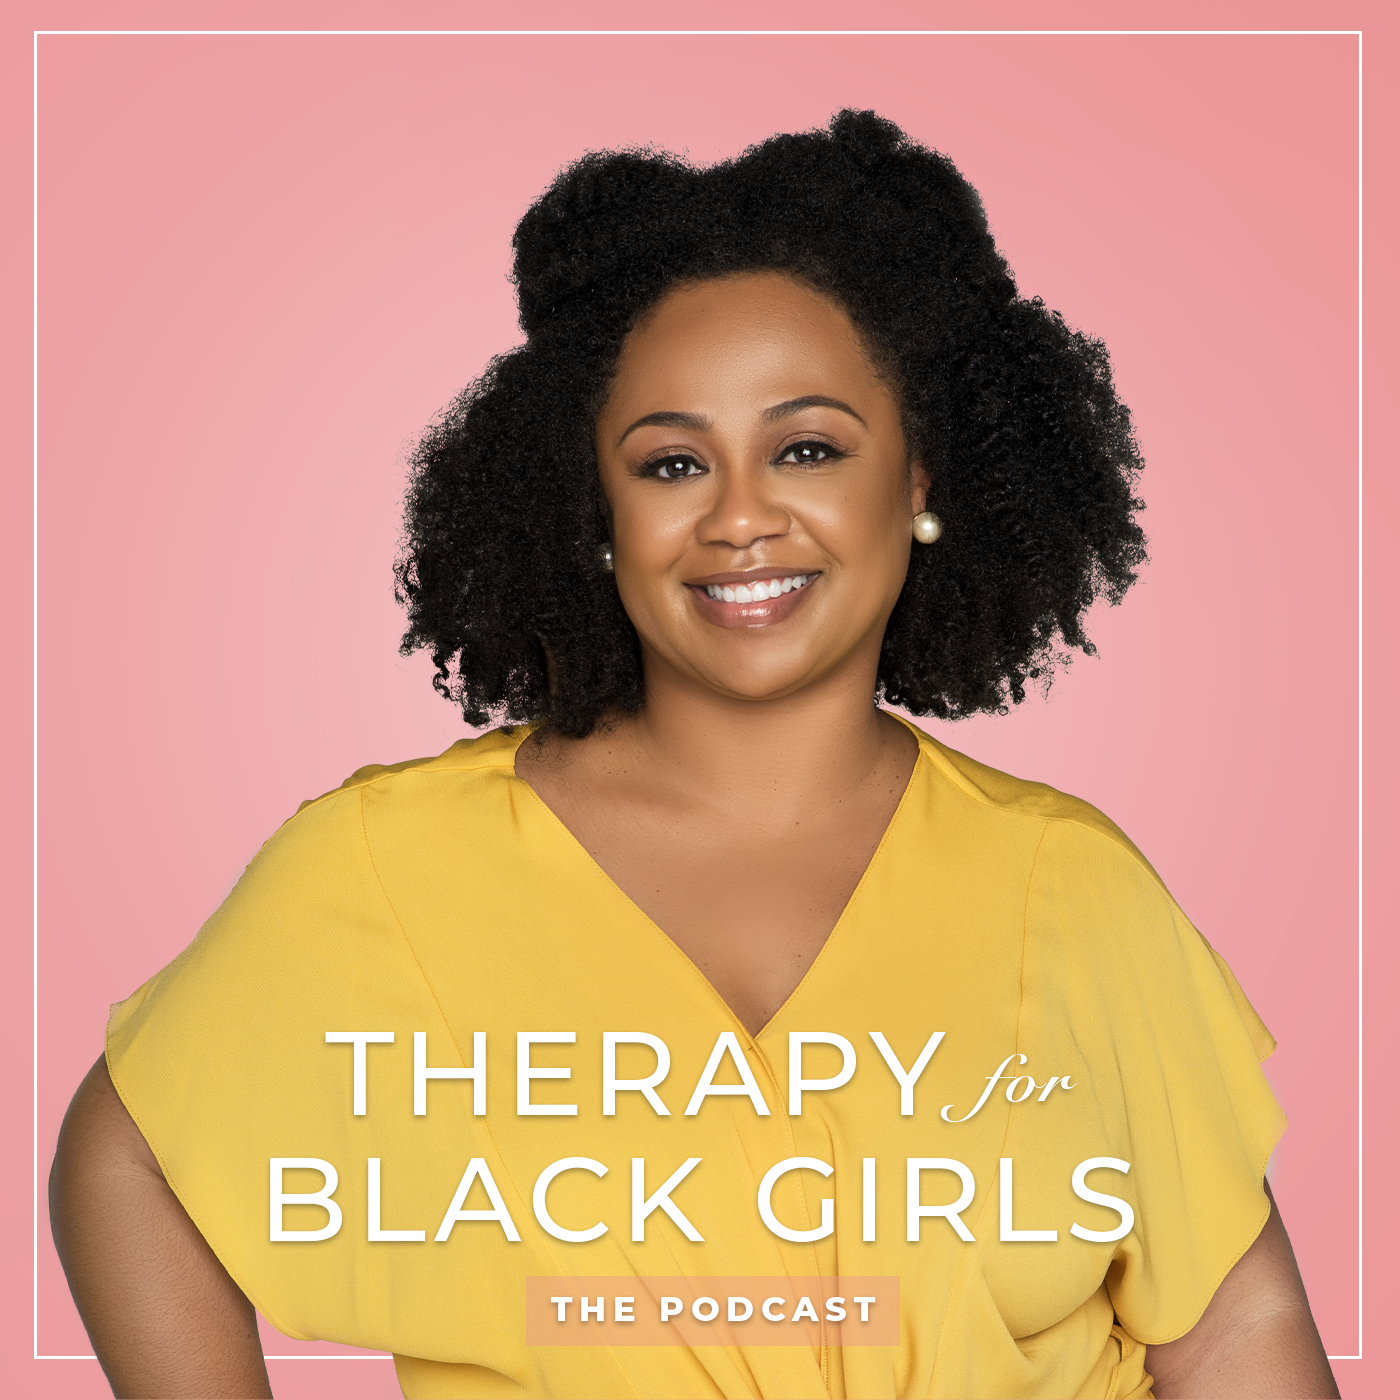 Therapy for Black Girls - Session 177: Black Women & Intimate Partner Violence